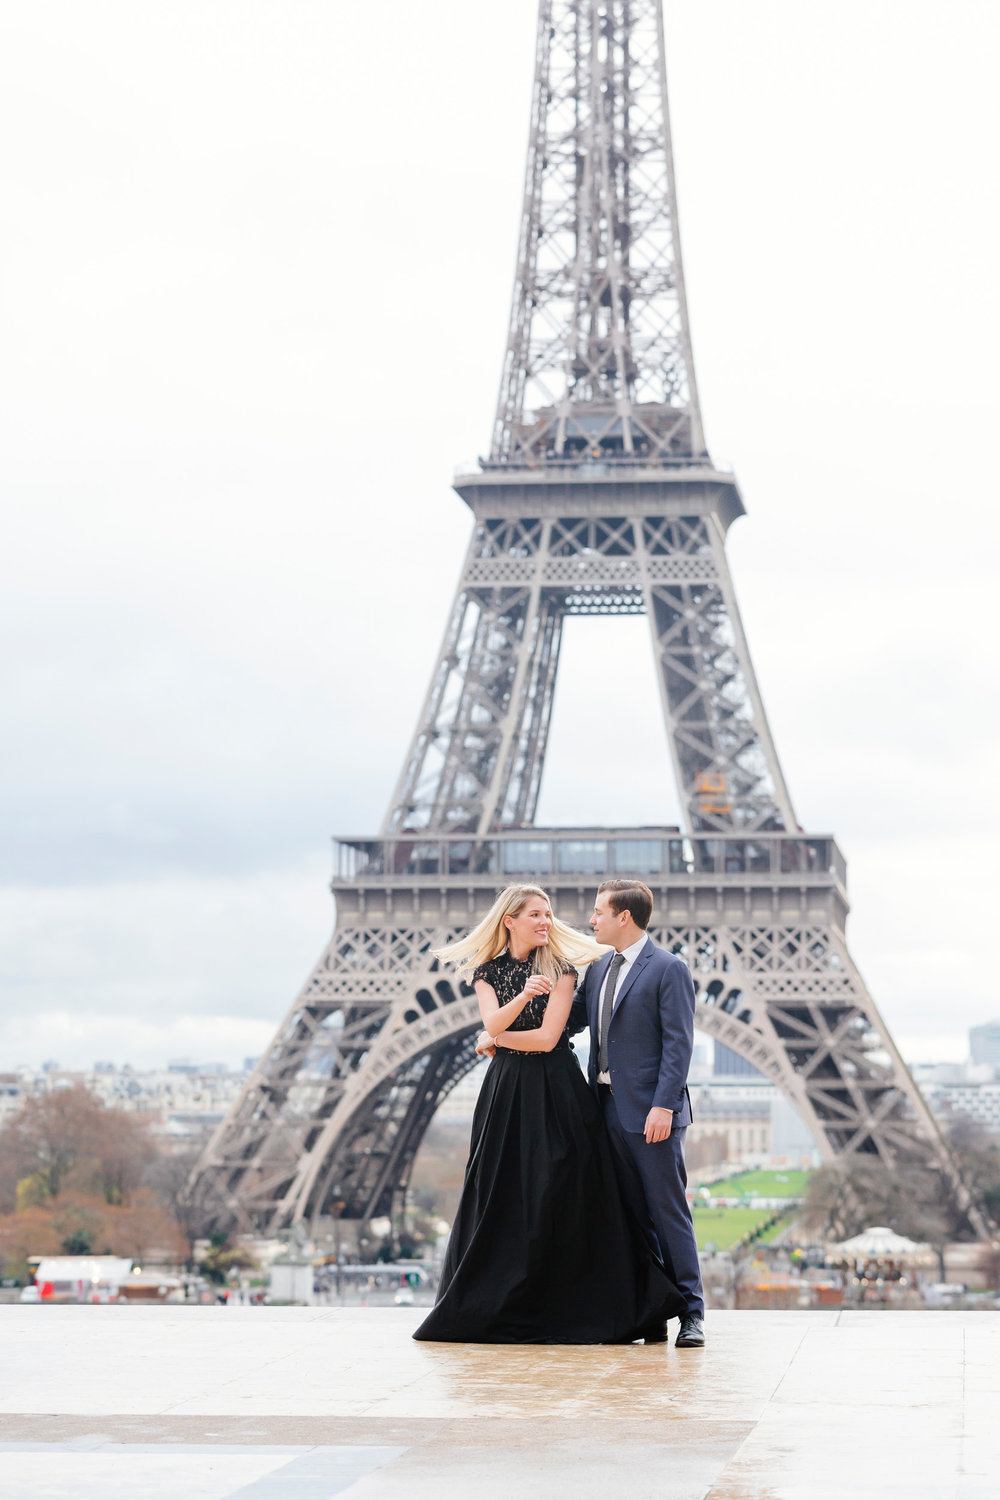 Paris vacation romantic couple portrait dancing at Trocadero with the view of Eiffel Tower captured by Paris Photographer Federico Guendel www.iheartparis.fr